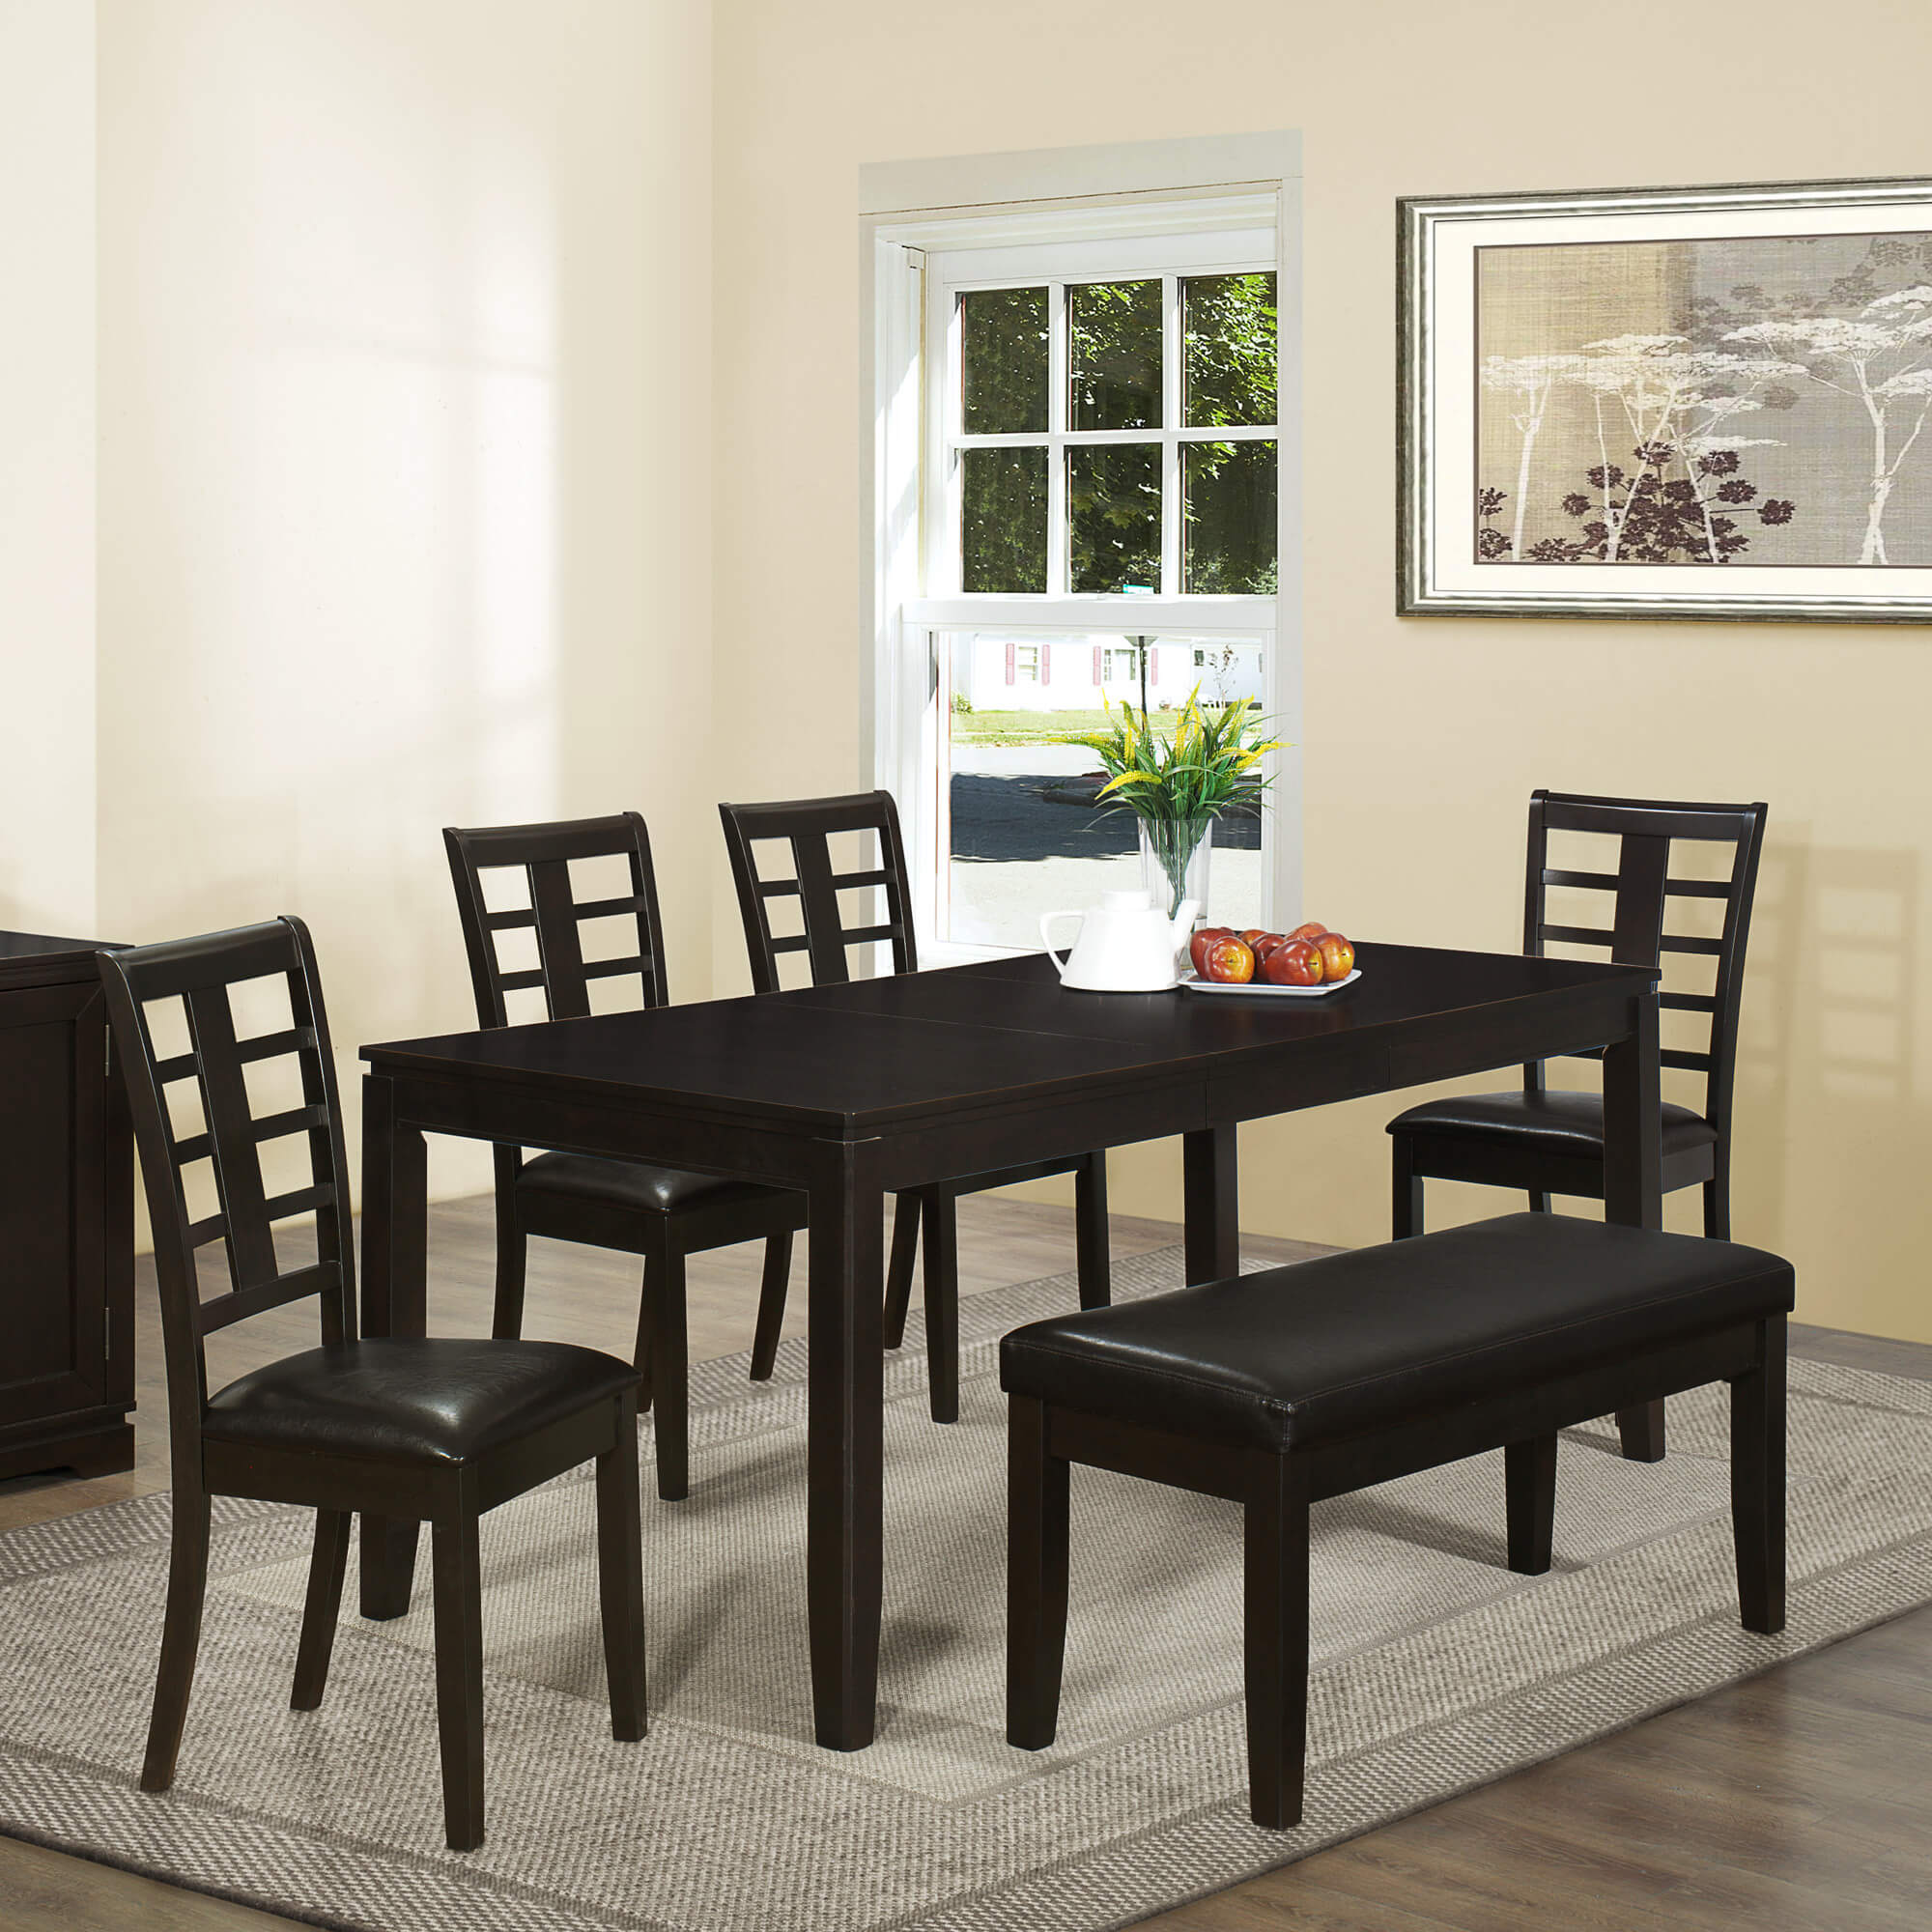 Dining Room Sets Big And Small With Bench Seating - 6 person dining room table with leaf